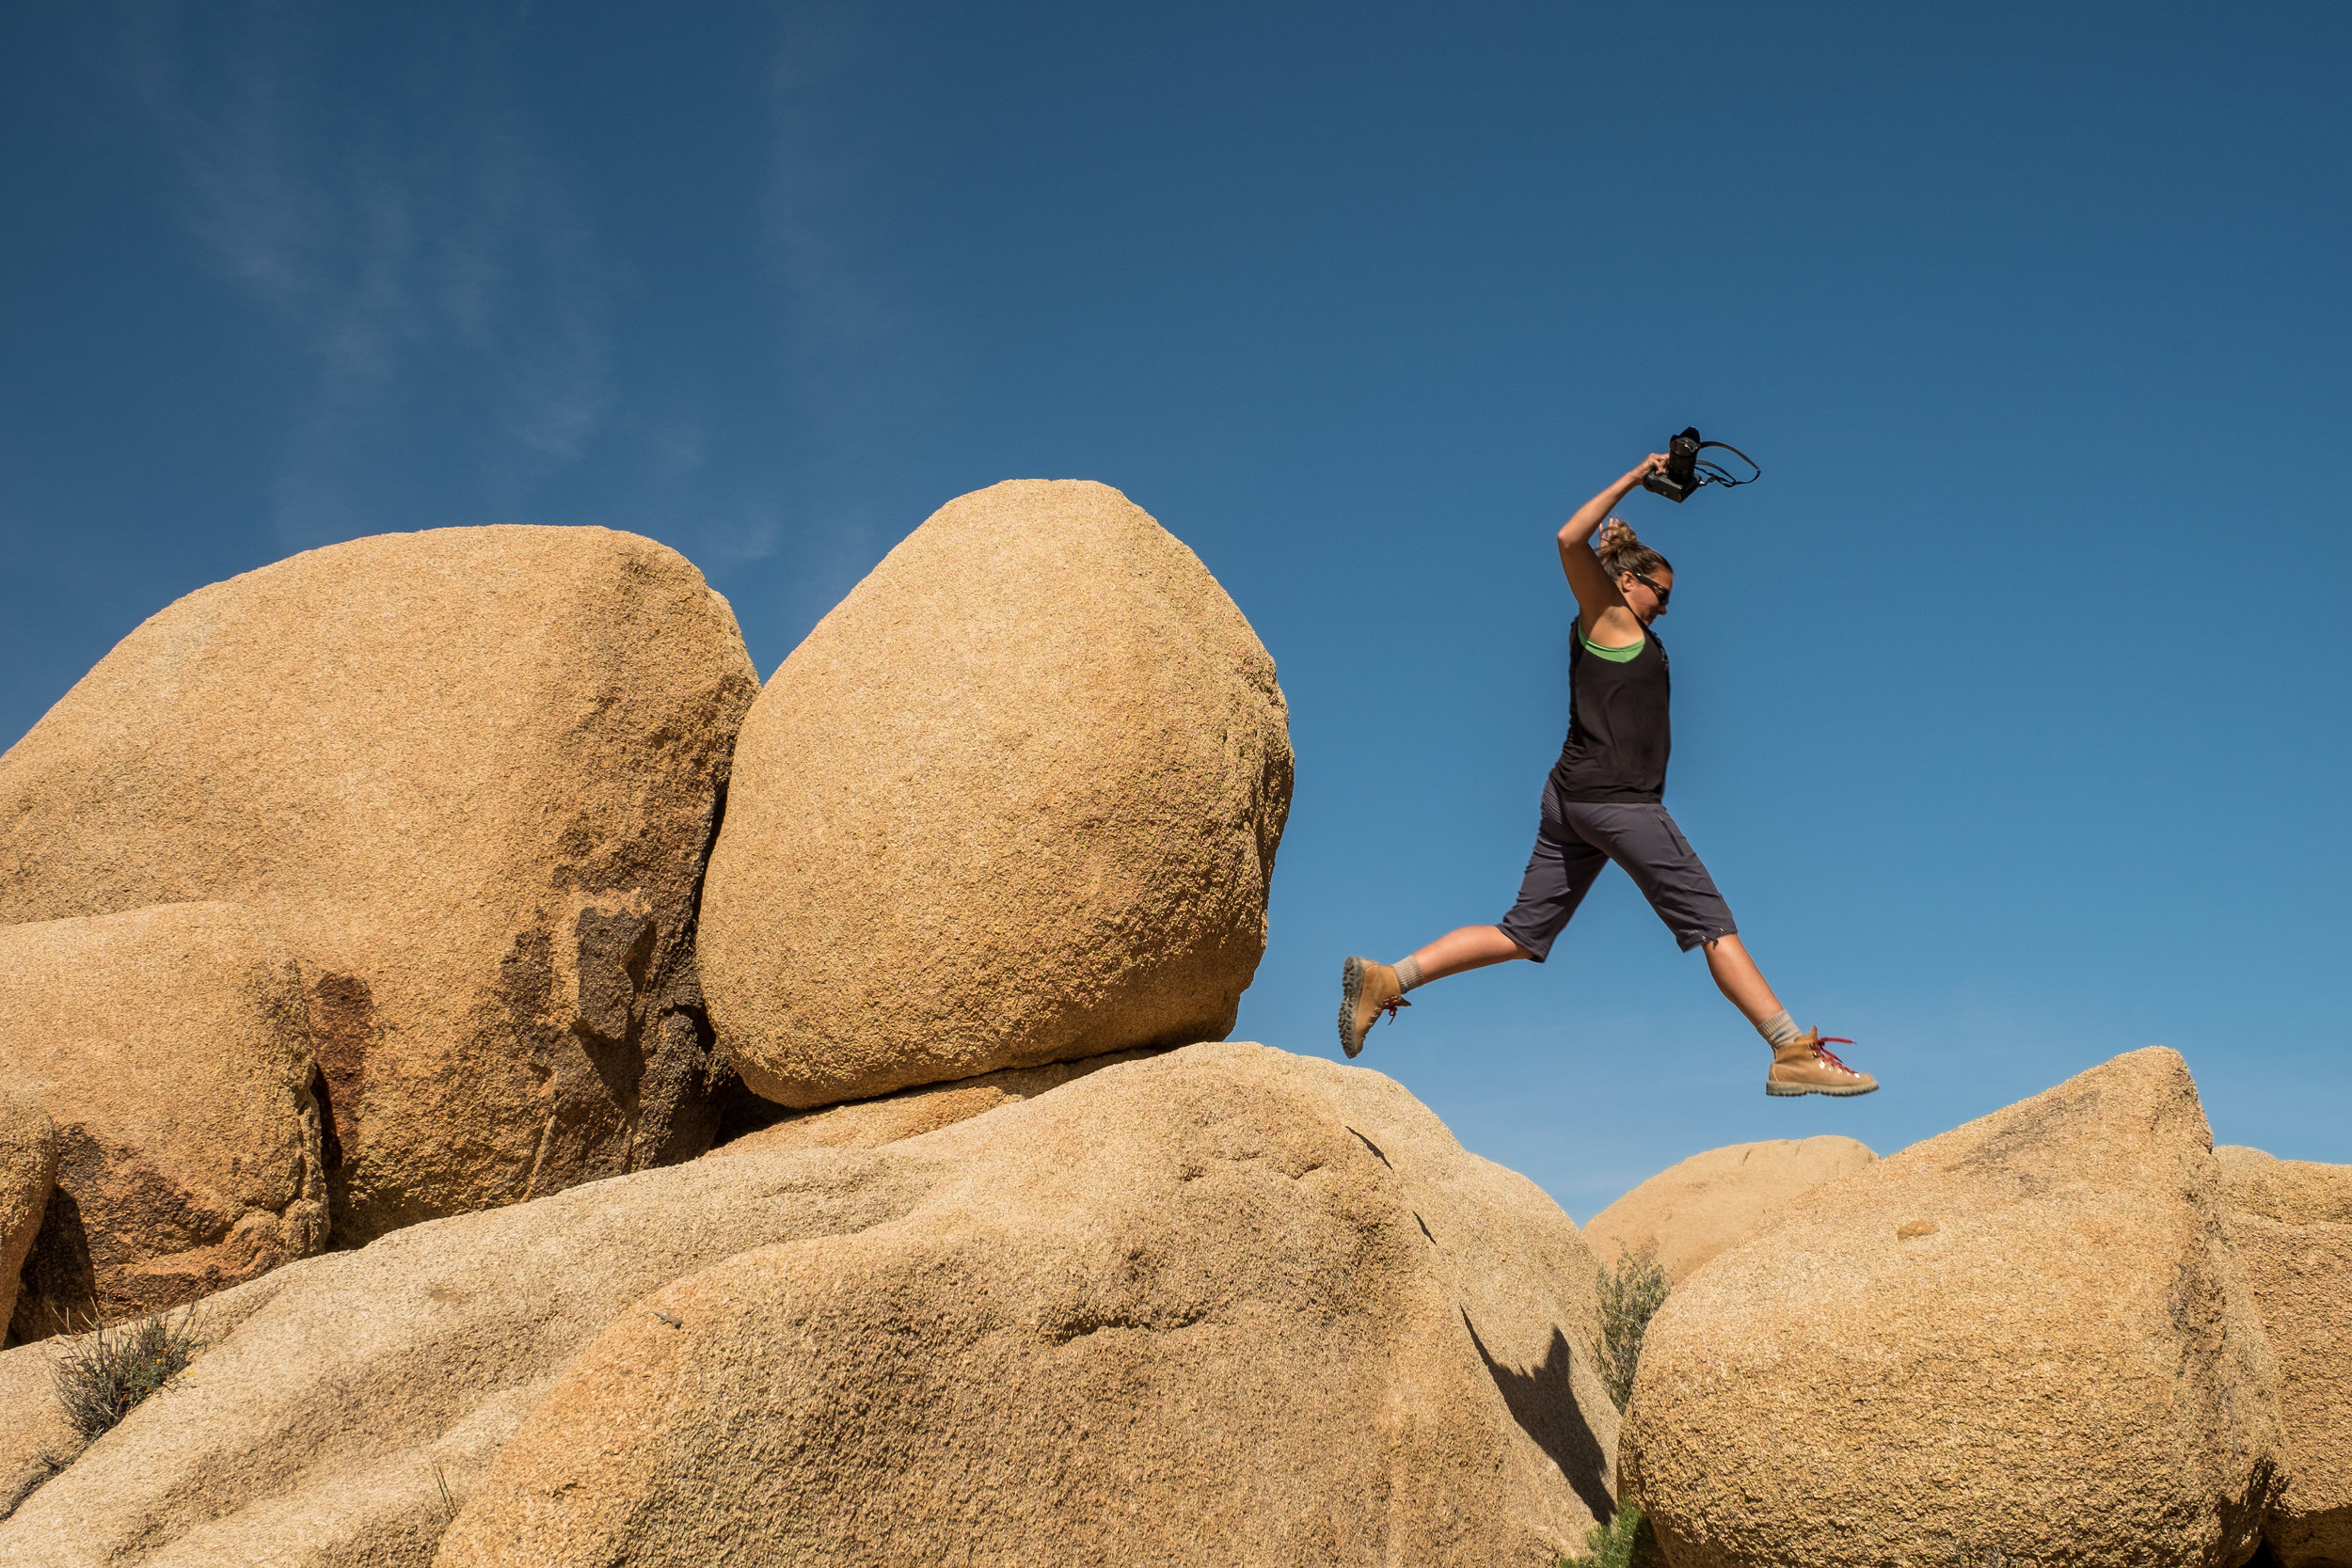 Bouldering in Joshua Tree National Park in the Mojave Desert in California is fit for all ages, fun, and free! Credit: JONATHAN IRISH